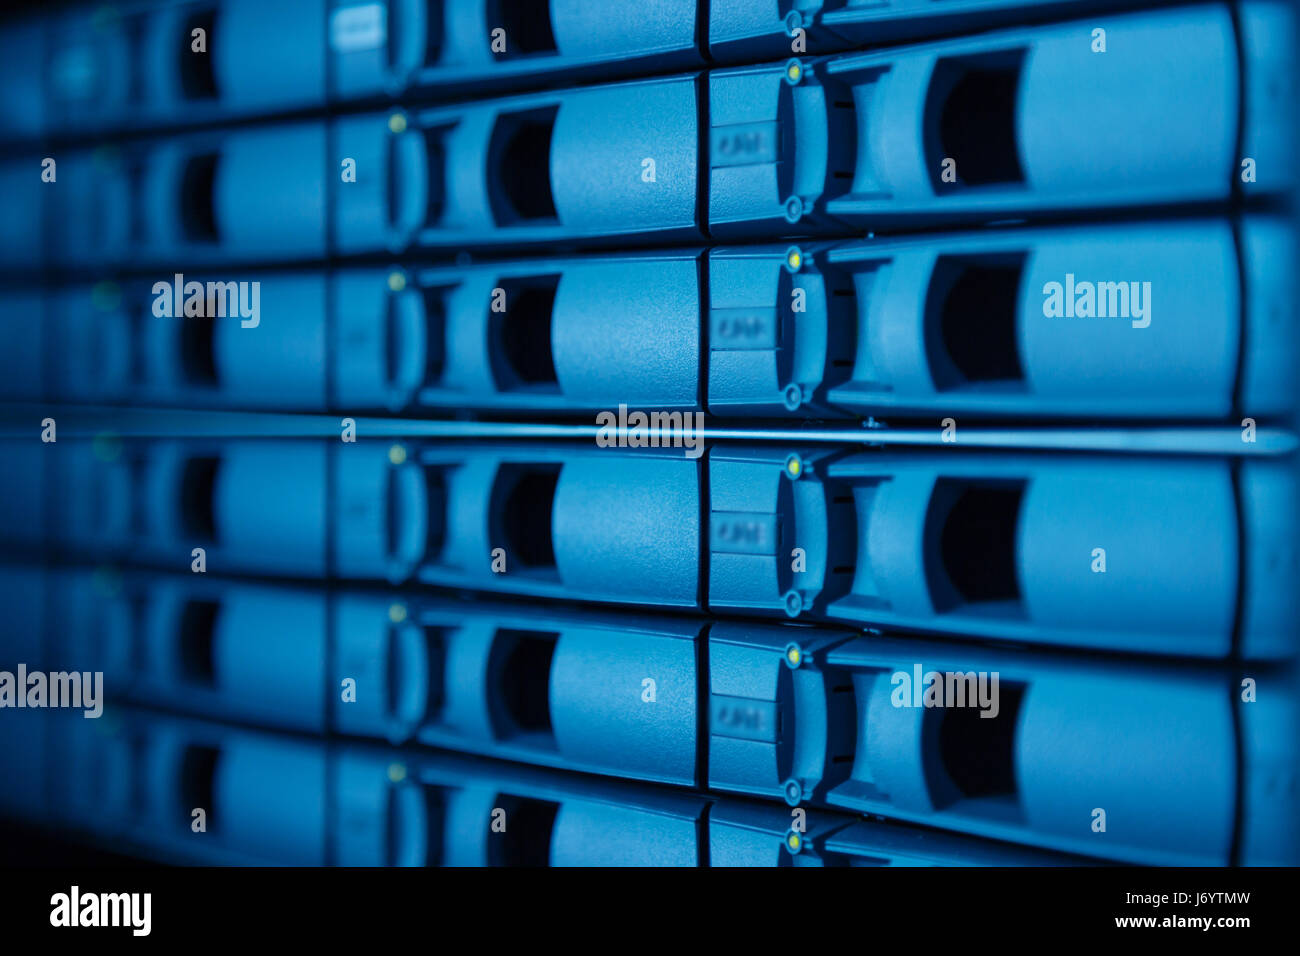 Server rack with hard drives - Stock Image